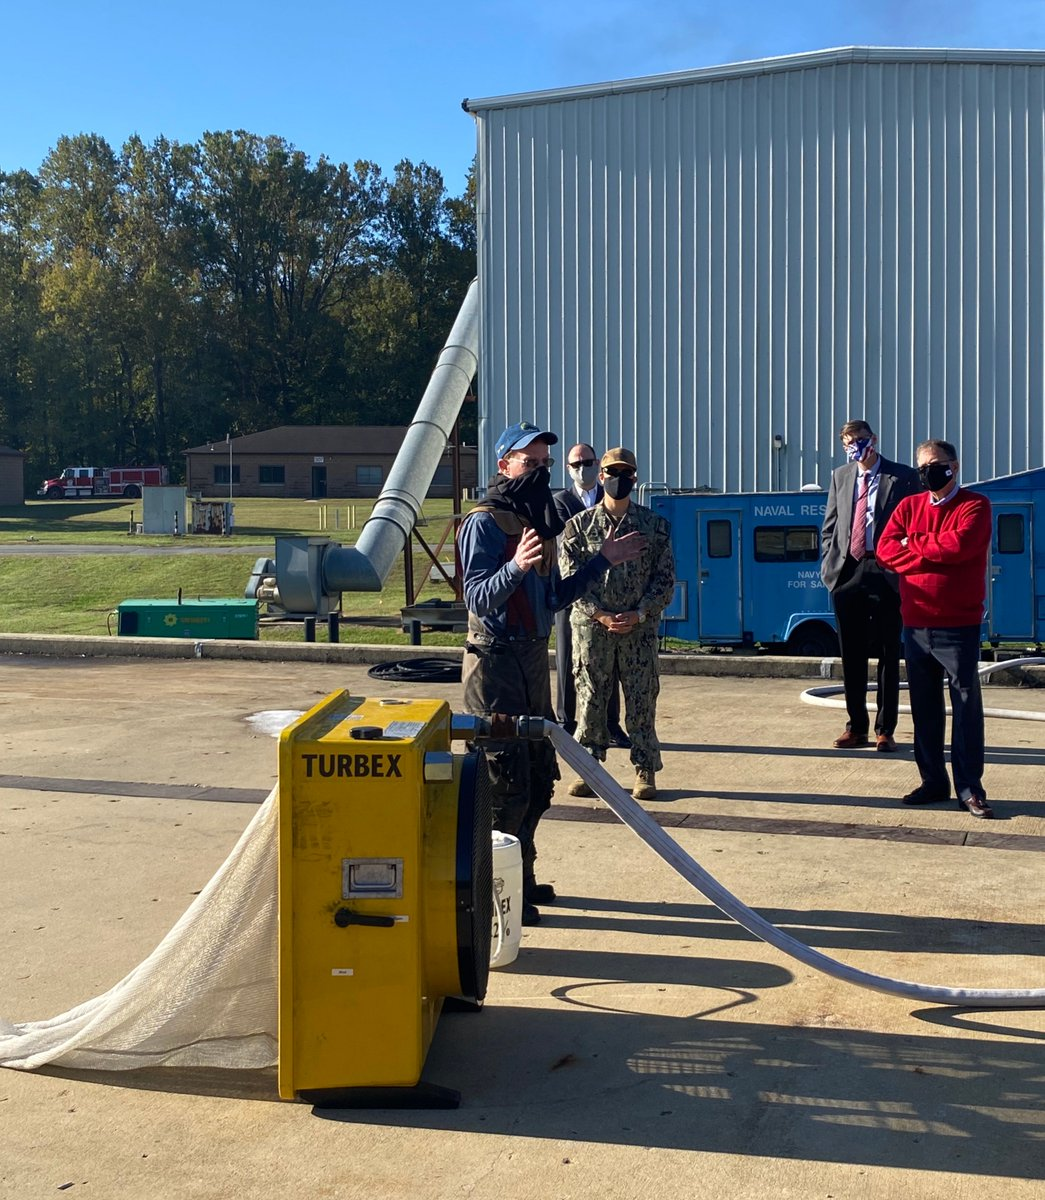 This morning I visited @USNRL for an AFFF demonstration as the @USNavy continues to seek a flourine-free formula that effectively extinguishes fires and safeguards our #environment. Keep up the great work!